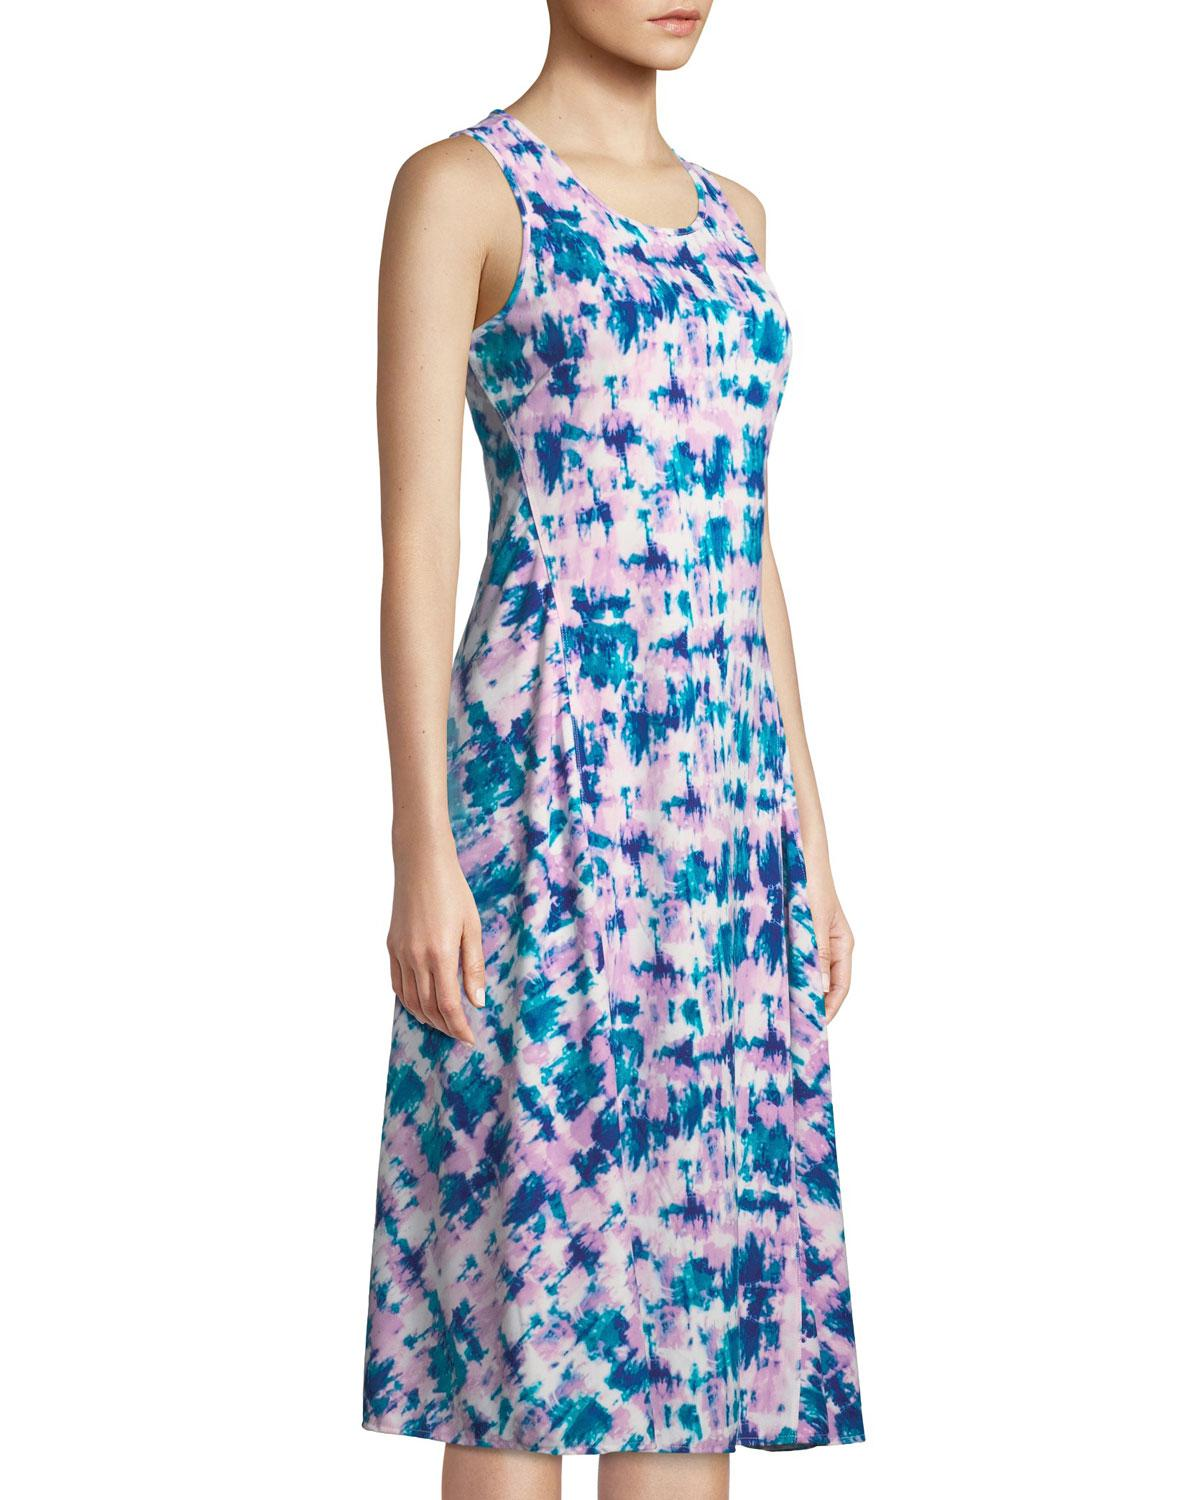 d2840f9310c Donna Karan Sleeveless Tie-dye Print Midi Dress in Blue - Lyst